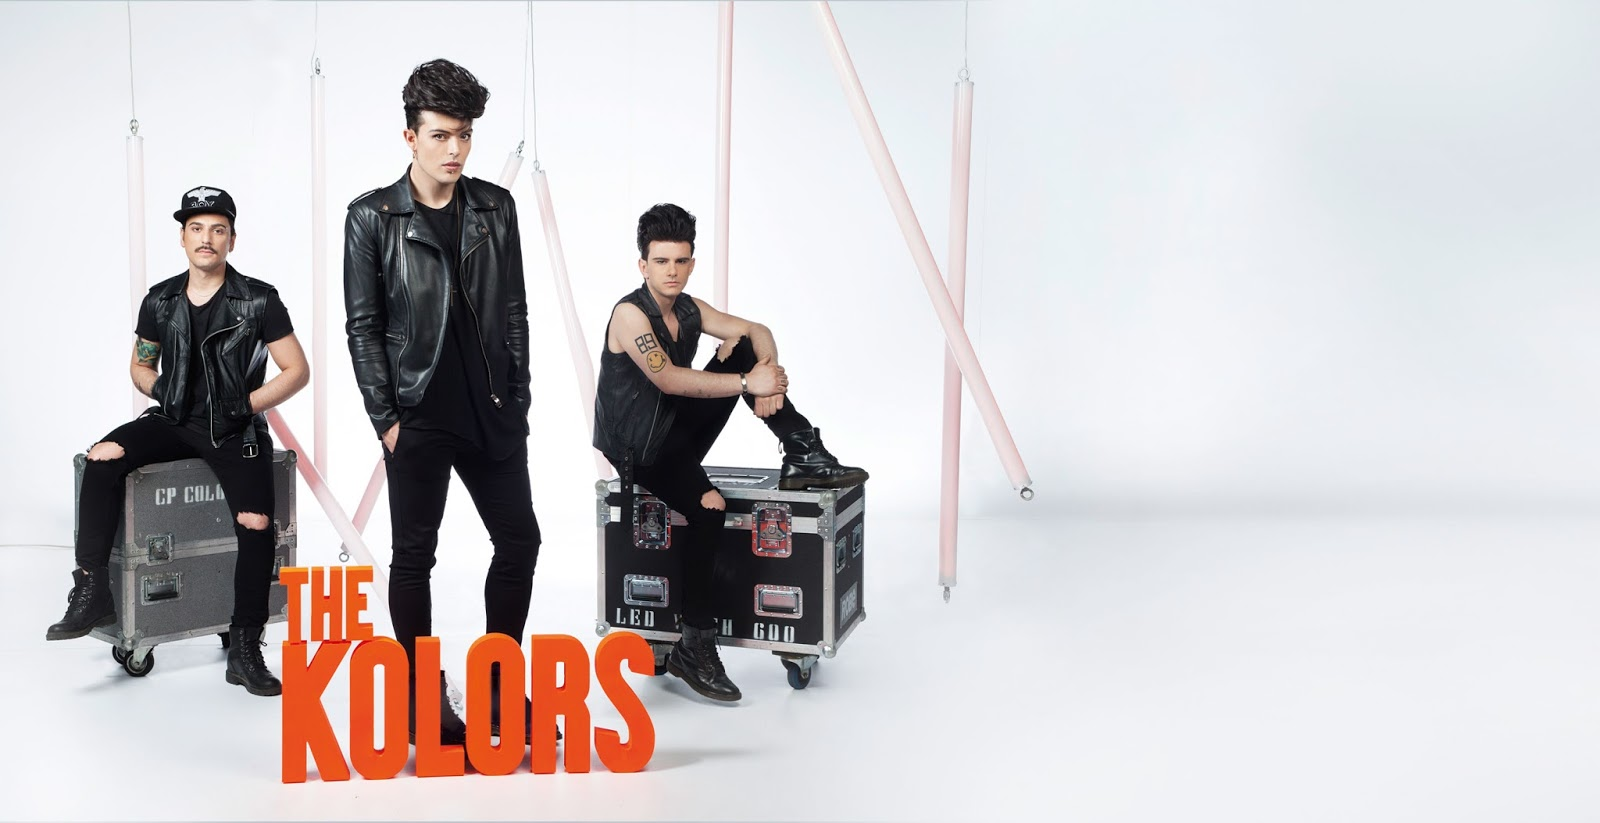 I's Up To You - The Kolors: testo, video e traduzione